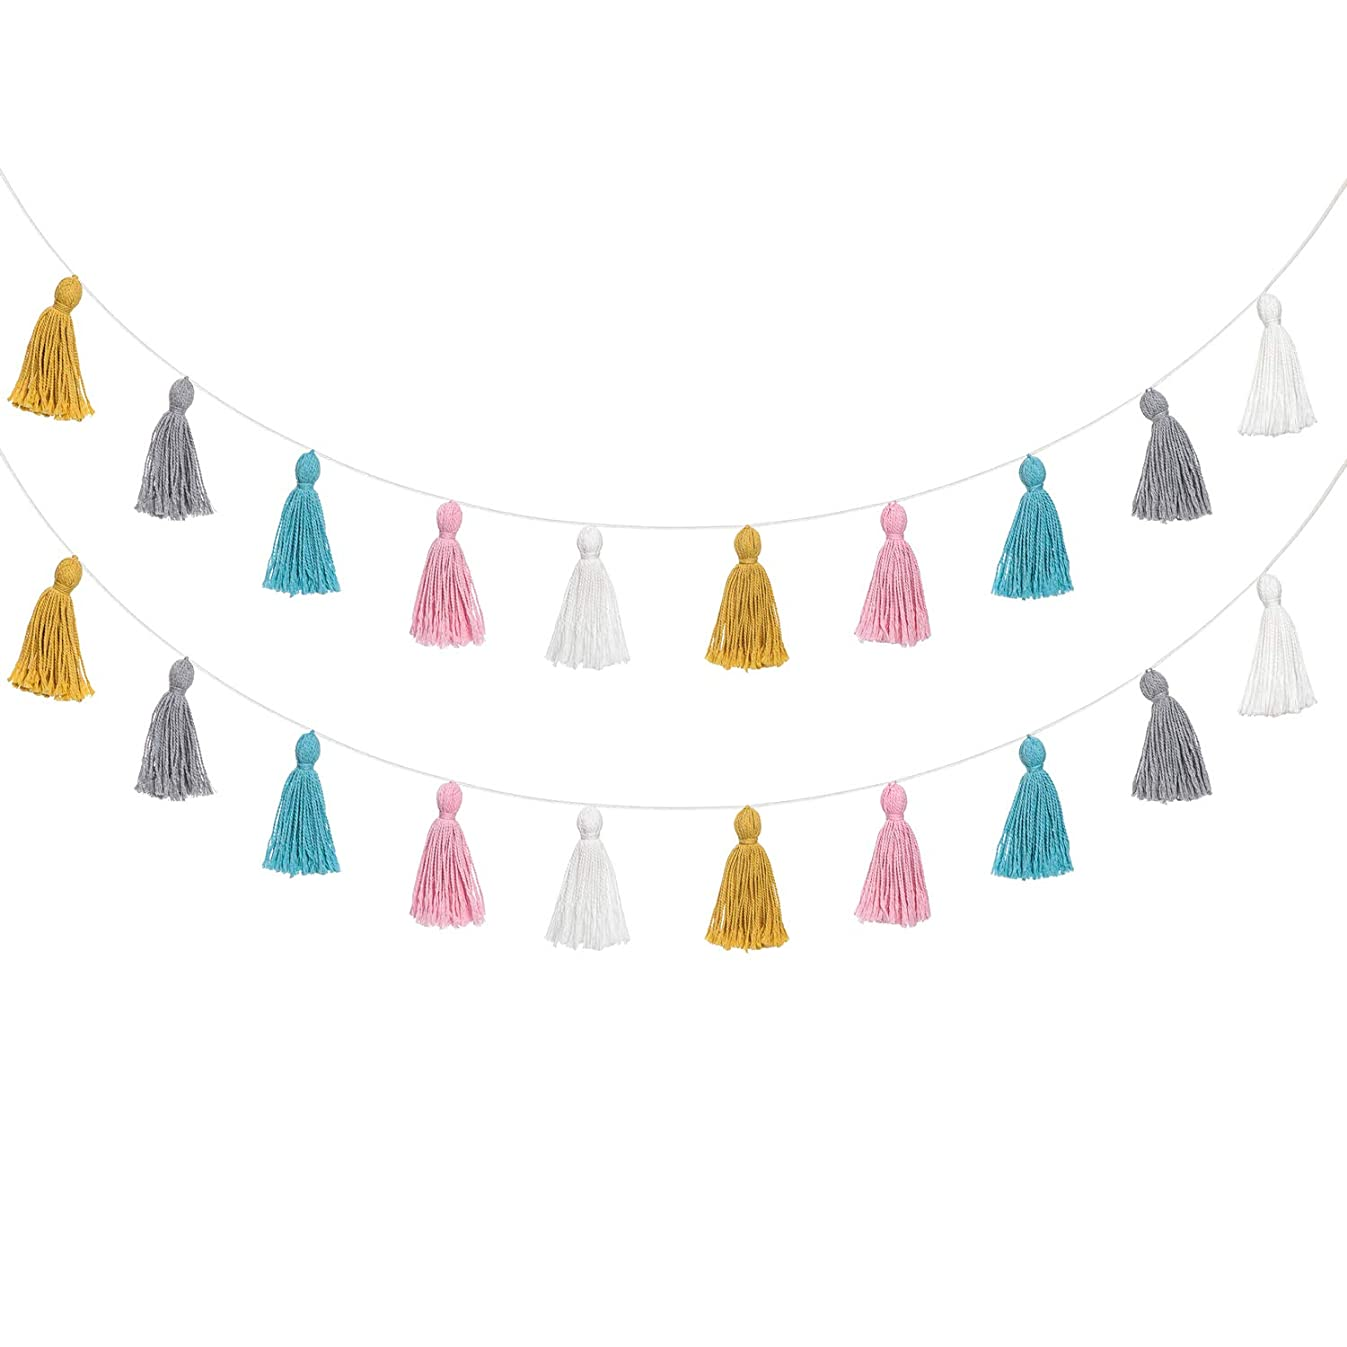 Mkono 2 Pack Cotton Tassel Garland Colored Tassels Banner Decorative Wall Hangings for Boho Home Decor, Birthday Mother Day Party, Baby Shower, Nursey Room